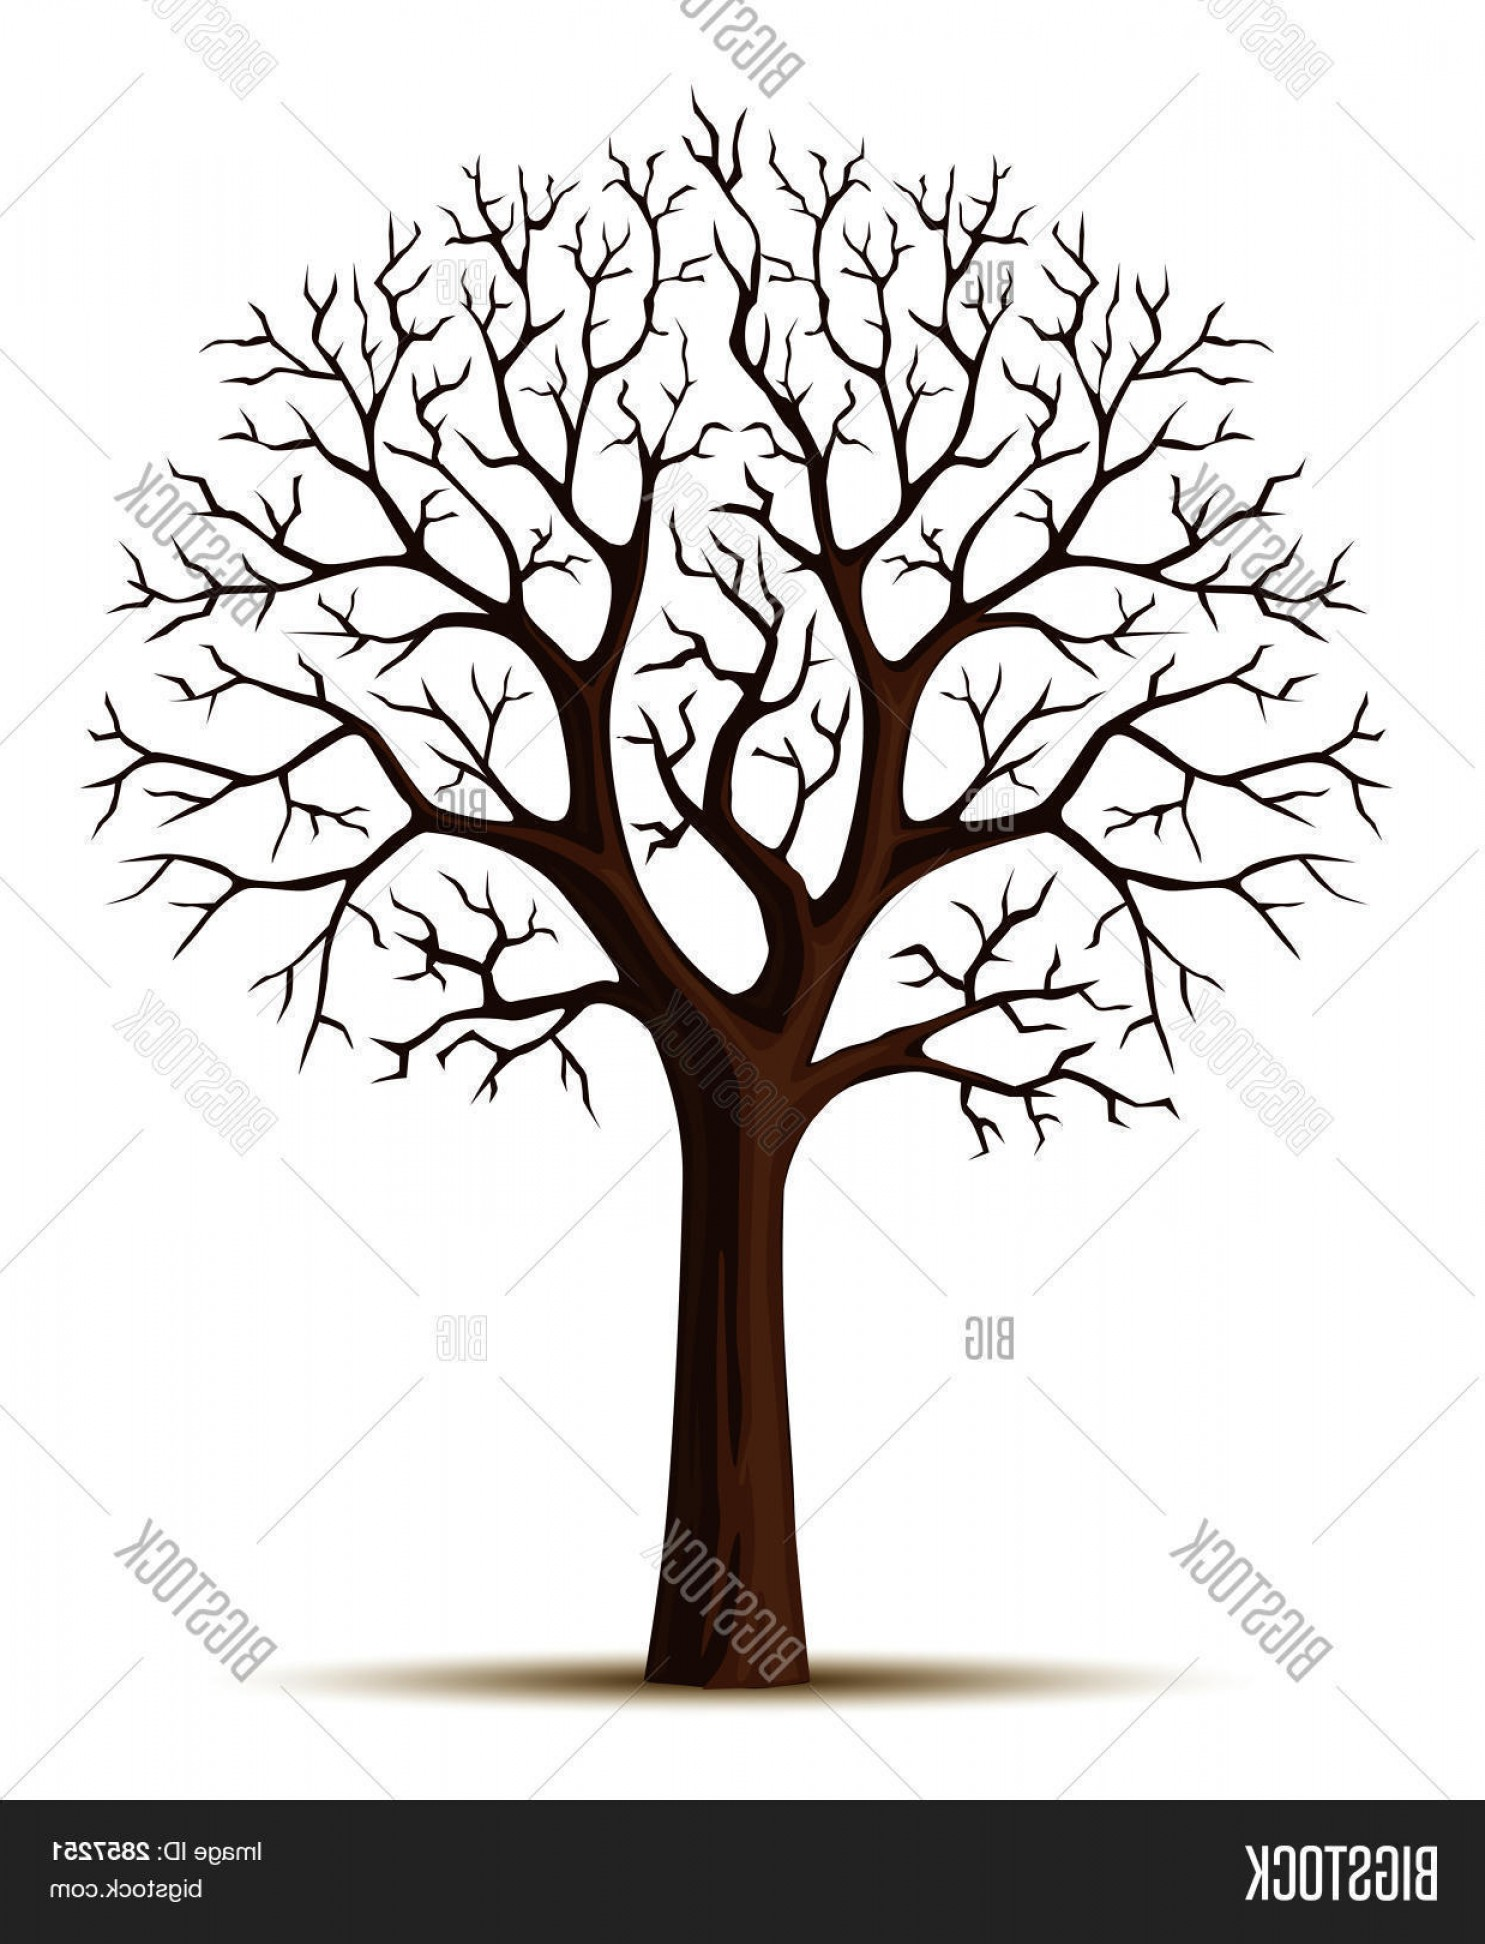 Tree Trunk Silhouette Vector: Stock Vector Vector Silhouette Of Tree Branches Cron